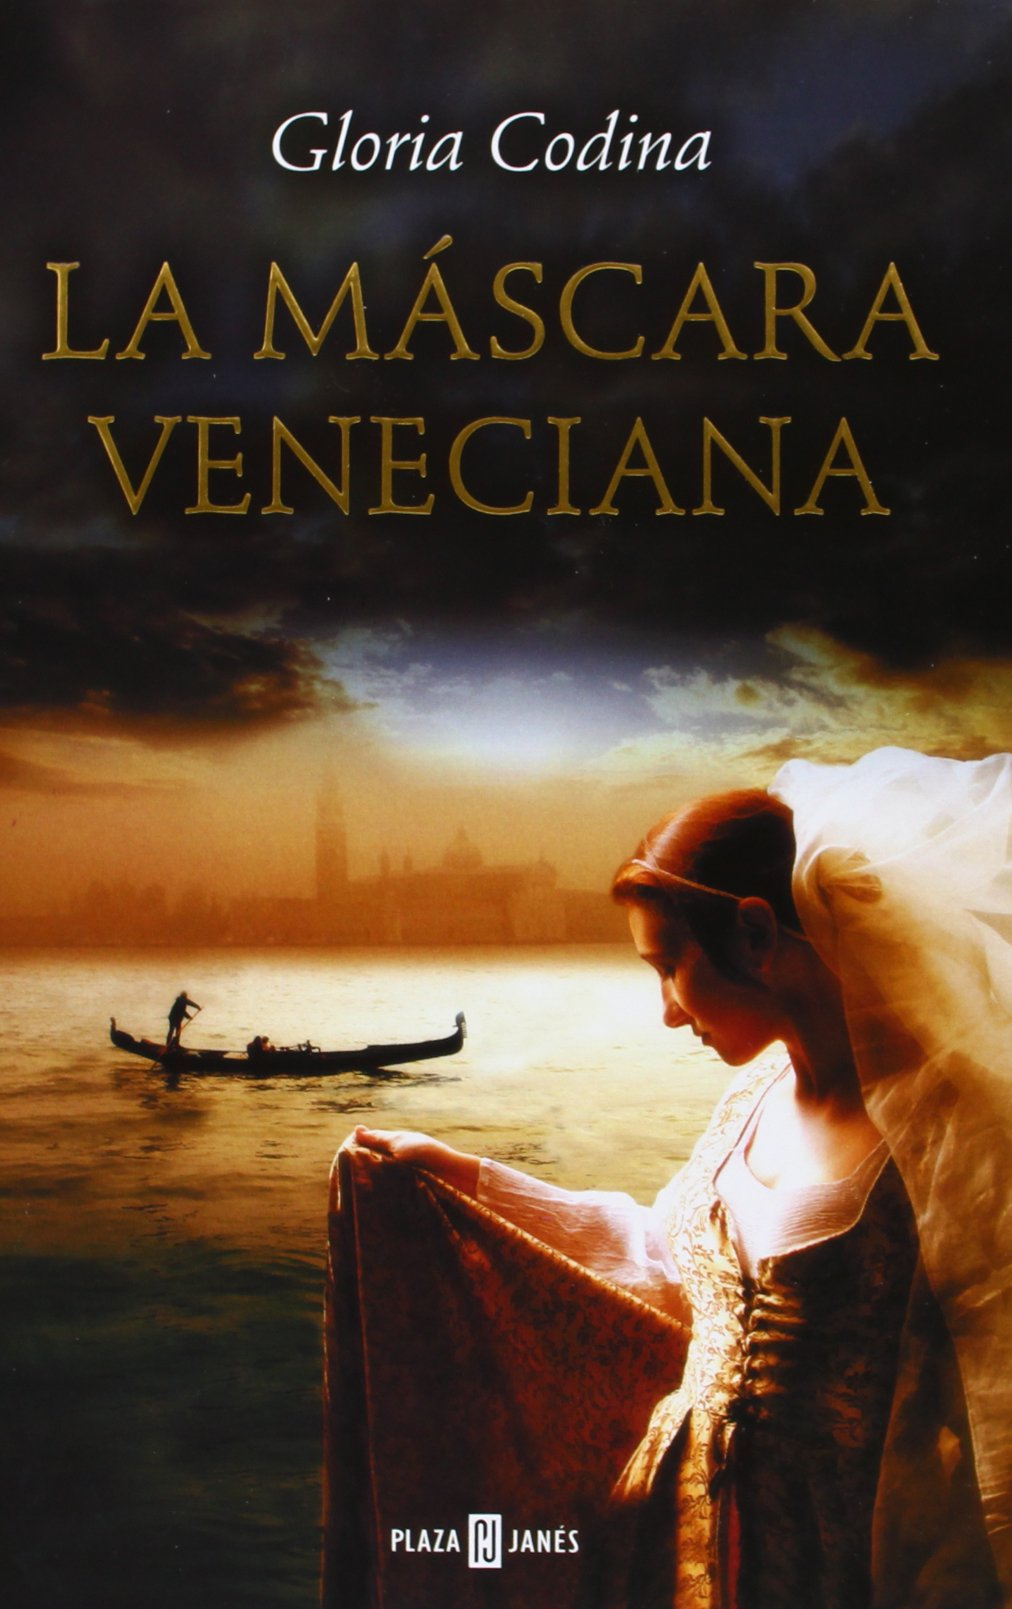 La máscara veneciana / The venecian mask (Spanish Edition): Gloria Codina: 9788401354861: Amazon.com: Books